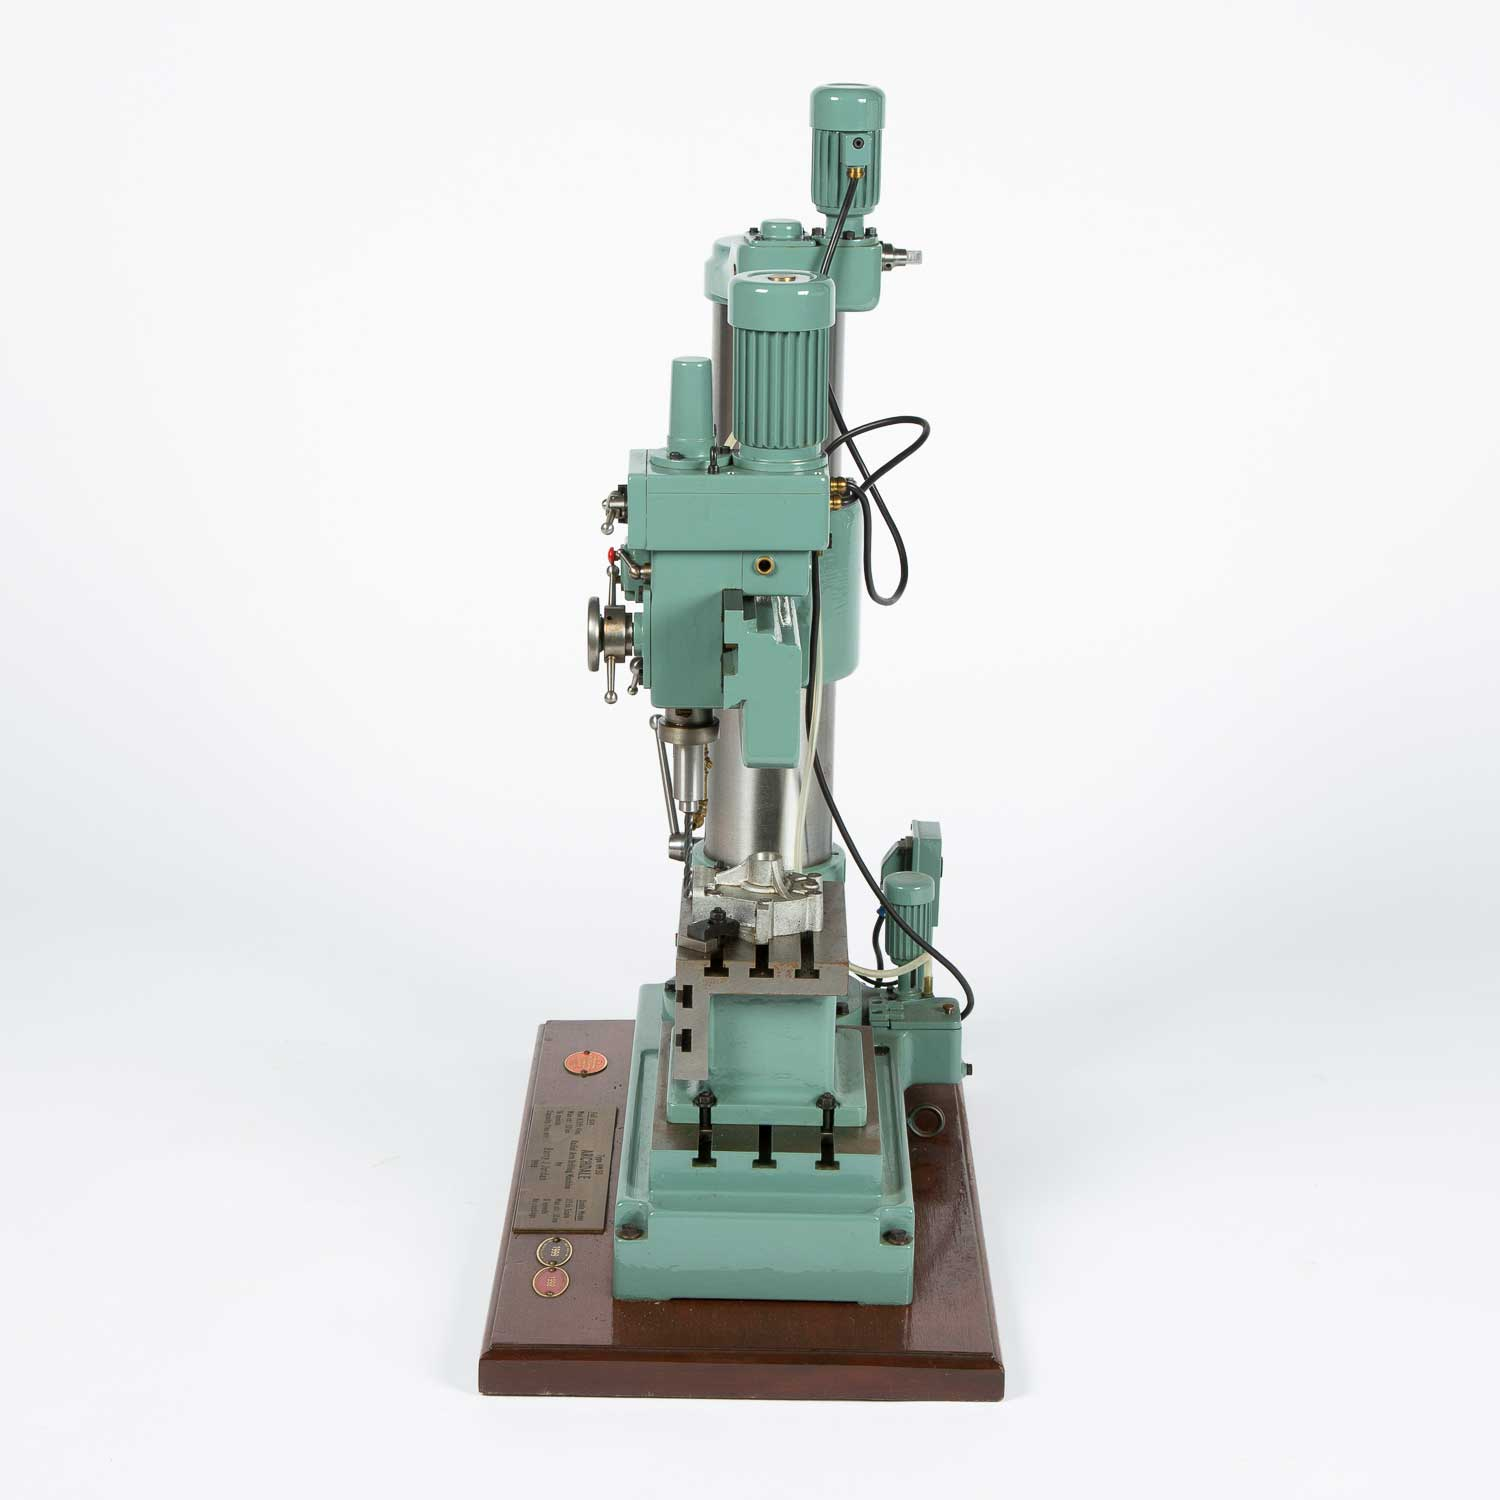 1/5th scale model of a Drilling Machine